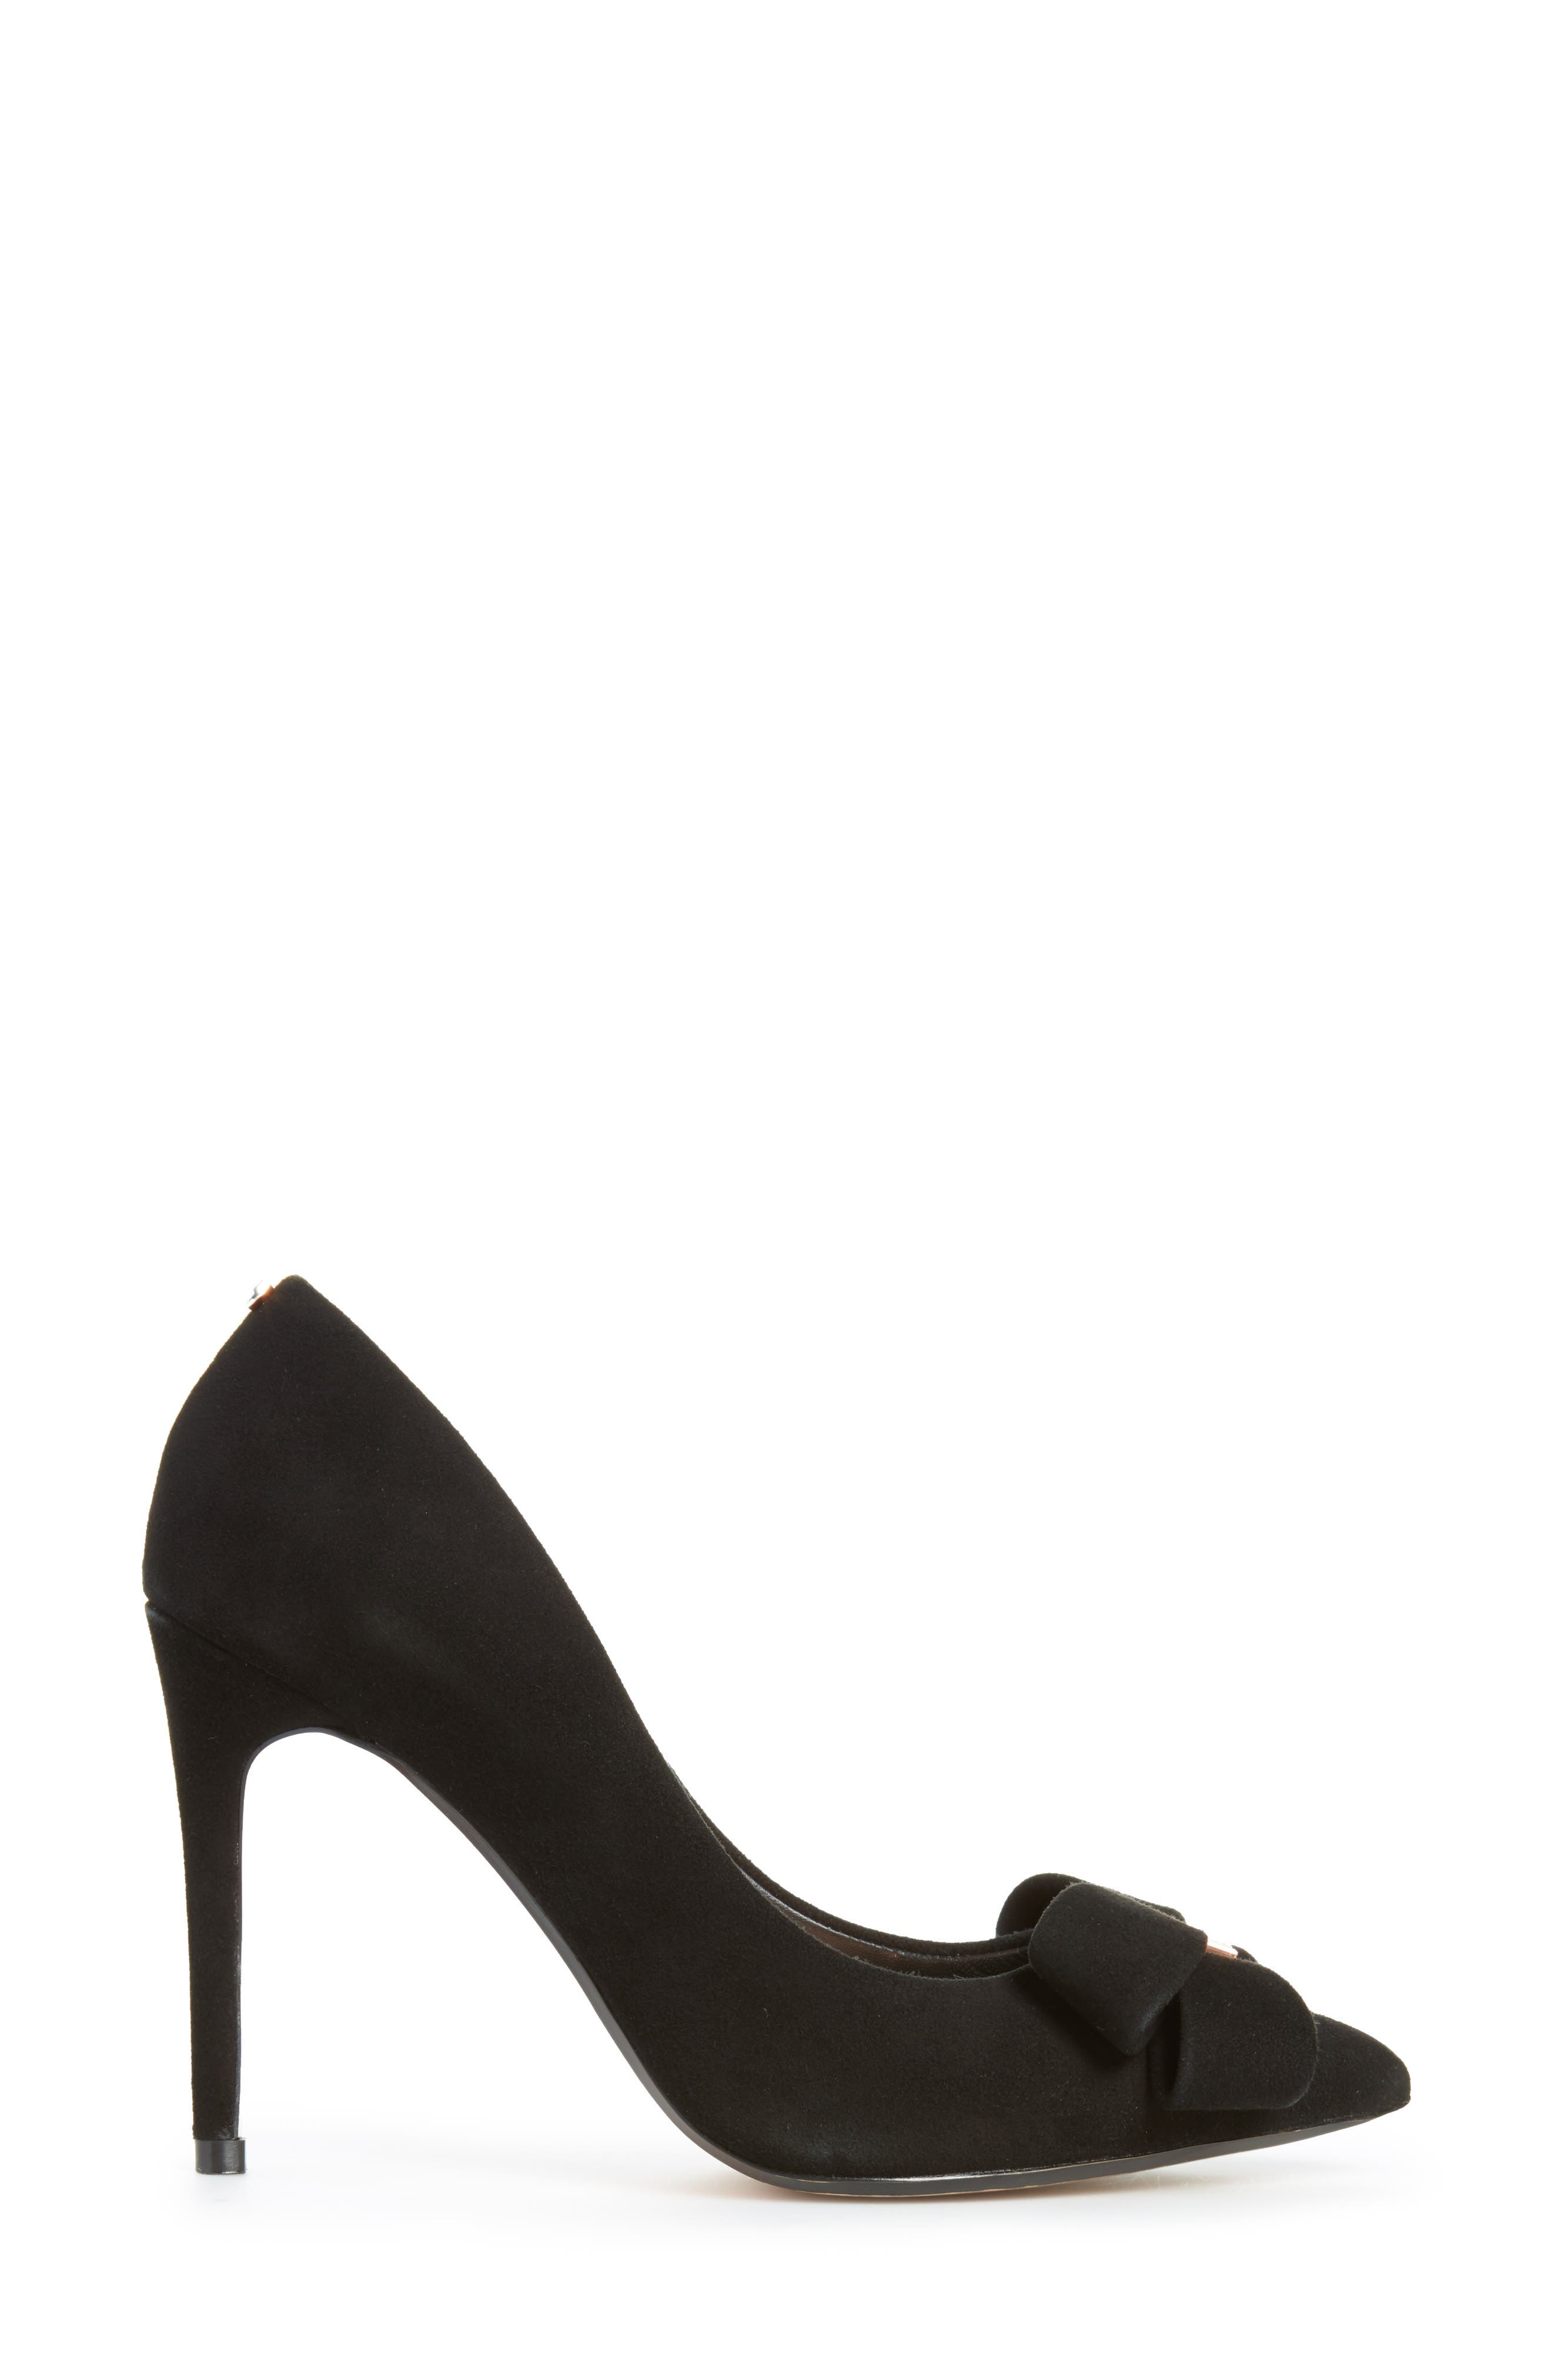 Skalett Pump,                             Alternate thumbnail 3, color,                             Black Suede